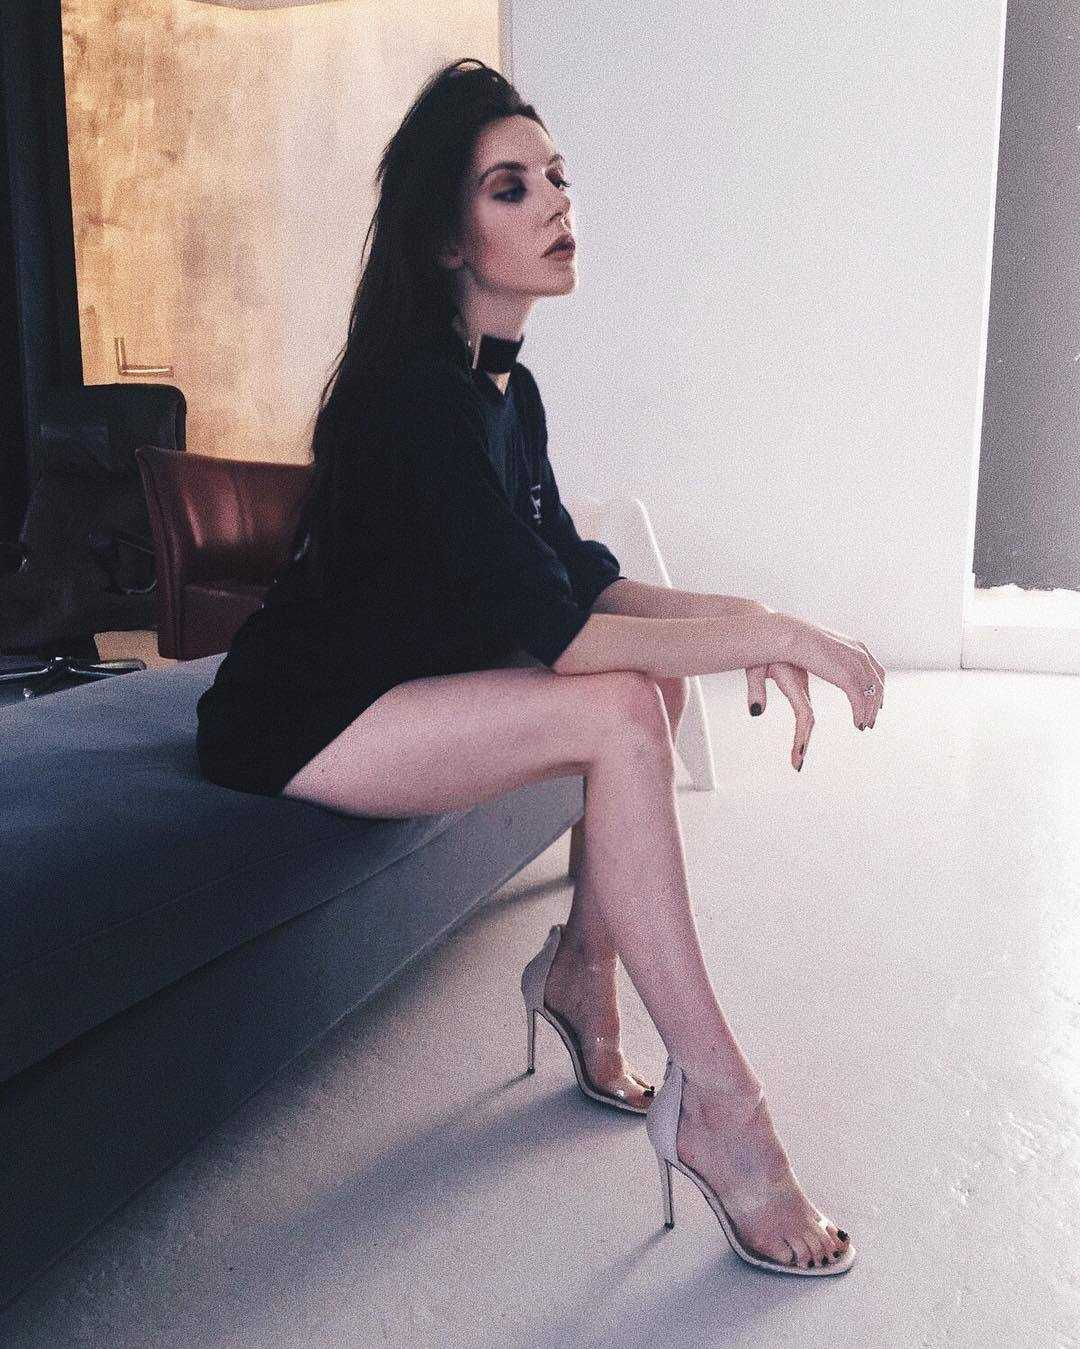 49 hot Samantha Bentley photos that are absolutely delicious